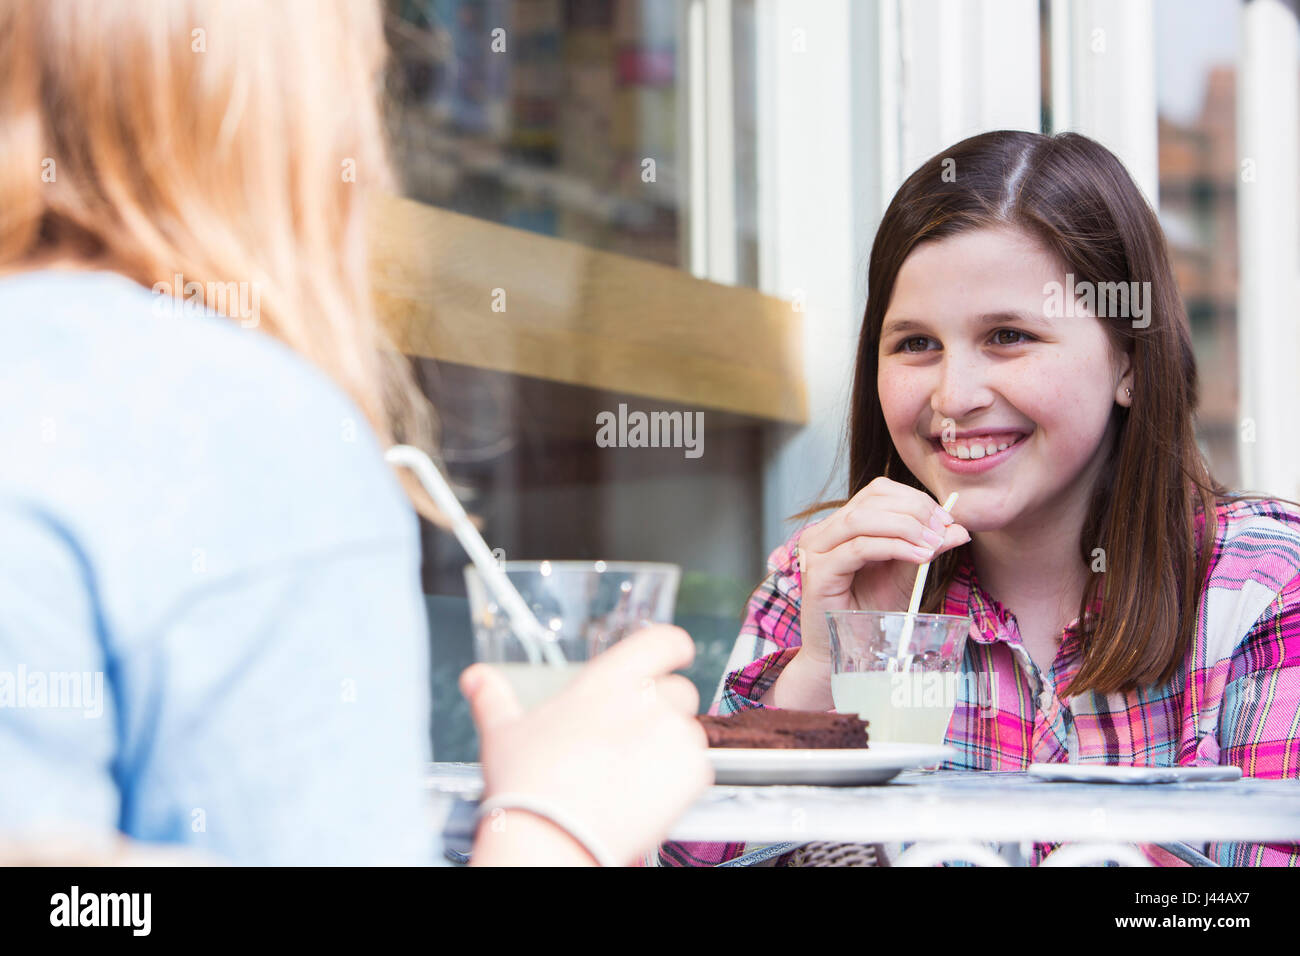 Due Ragazze in Chat a Outdoor Cafe tabella Immagini Stock